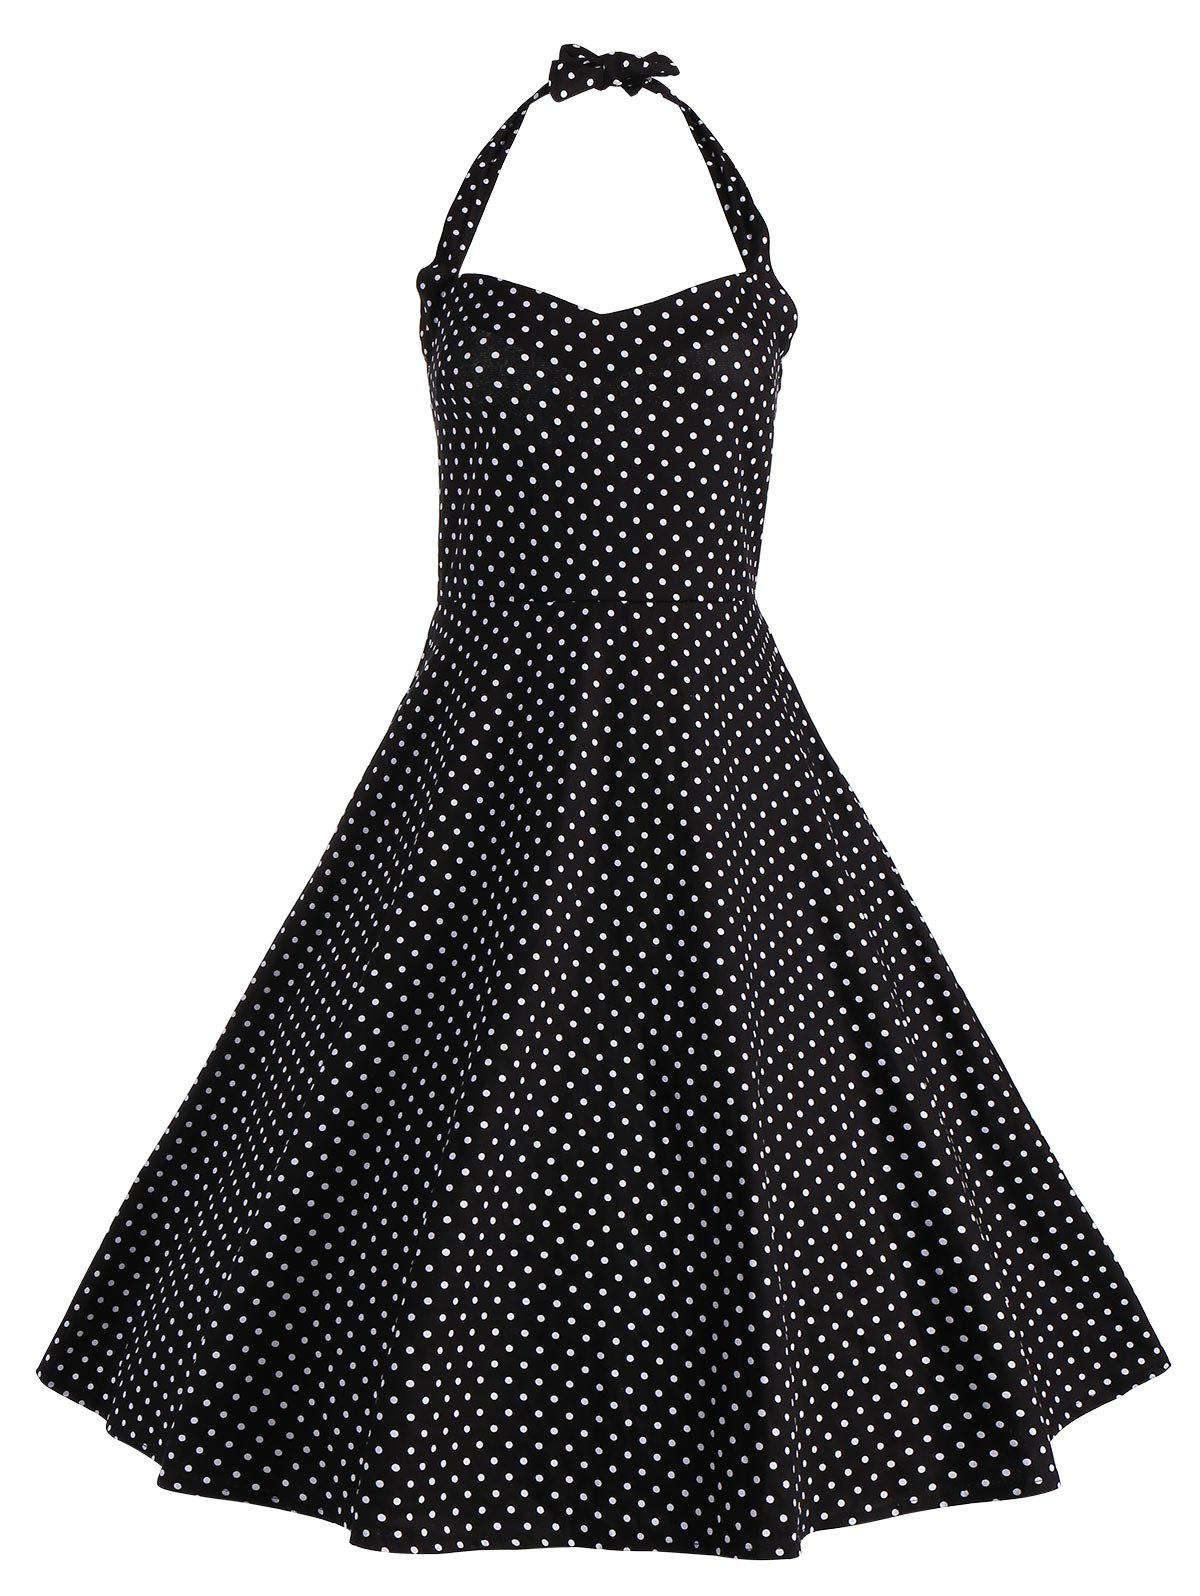 Halter Polka Dot Vintage Plus Size DressWOMEN<br><br>Size: 5XL; Color: BLACK; Style: Vintage; Material: Polyester; Silhouette: A-Line; Dresses Length: Knee-Length; Neckline: Halter; Sleeve Length: Sleeveless; Pattern Type: Polka Dot; With Belt: No; Season: Summer; Weight: 0.5200kg; Package Contents: 1 x Dress;